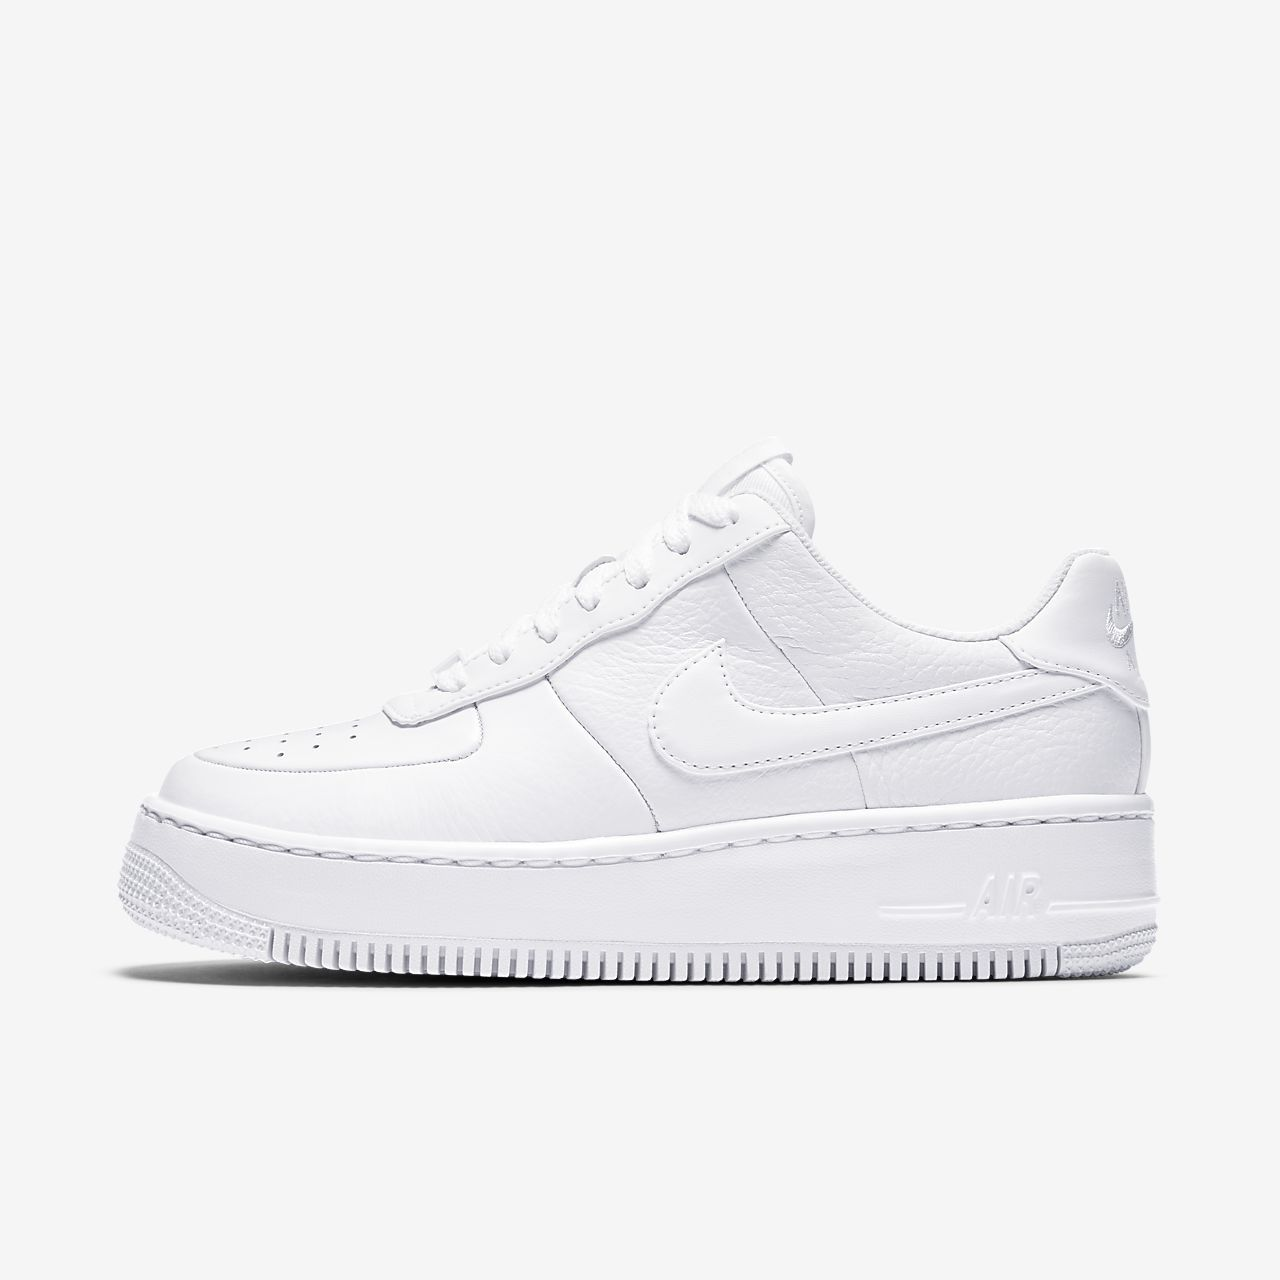 ac36868999c Chaussure Nike Air Force 1 Upstep pour Femme